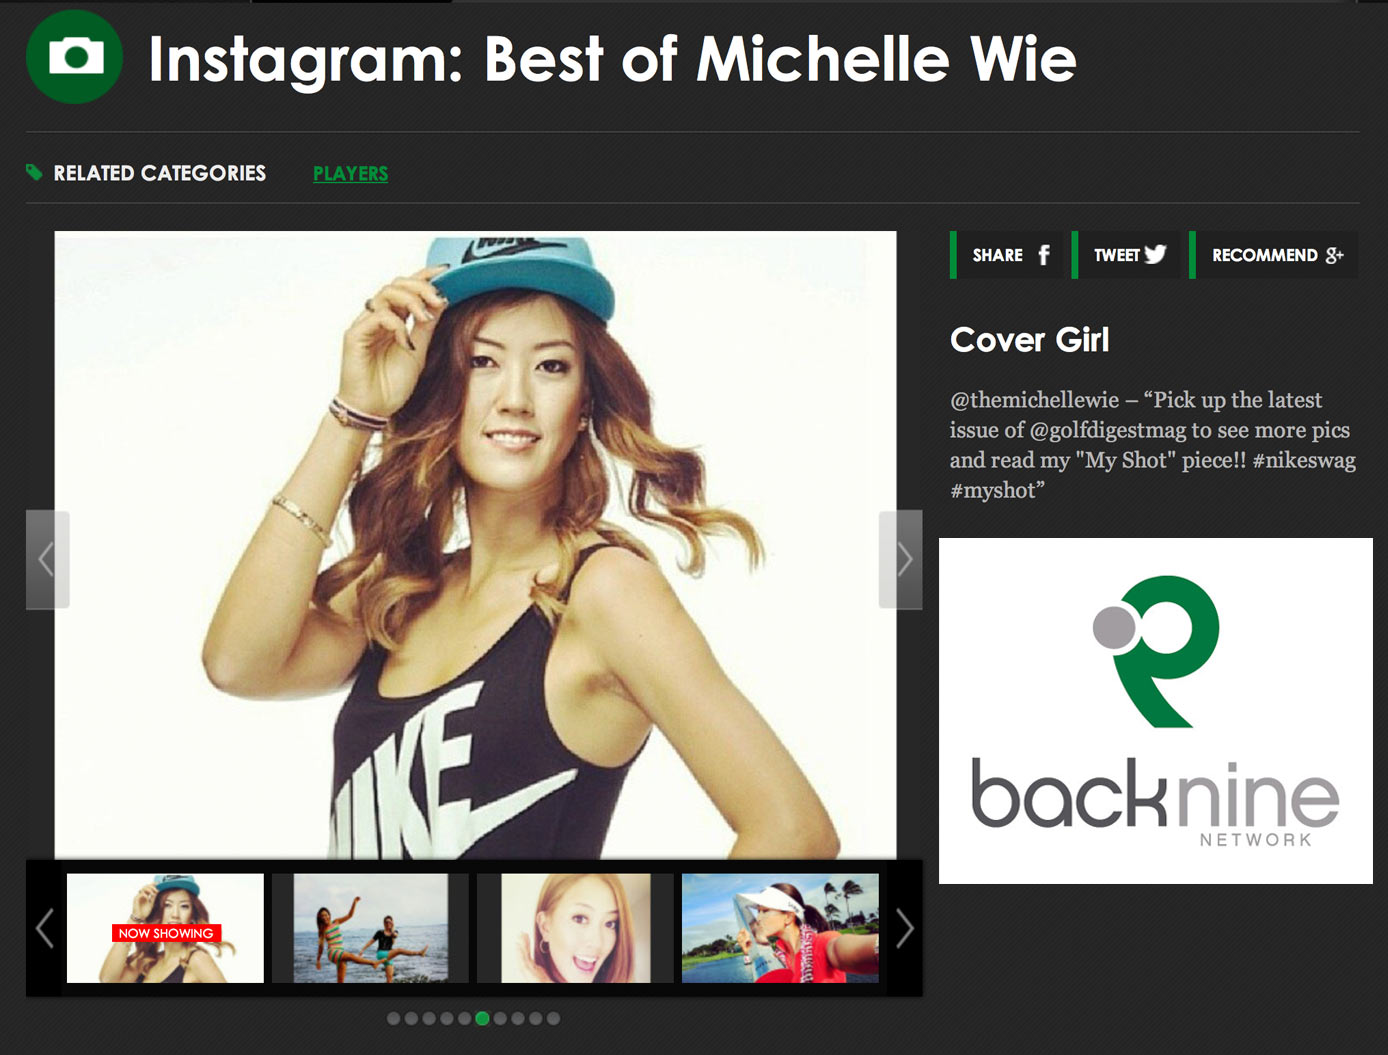 michelle-wie-gallery-grab